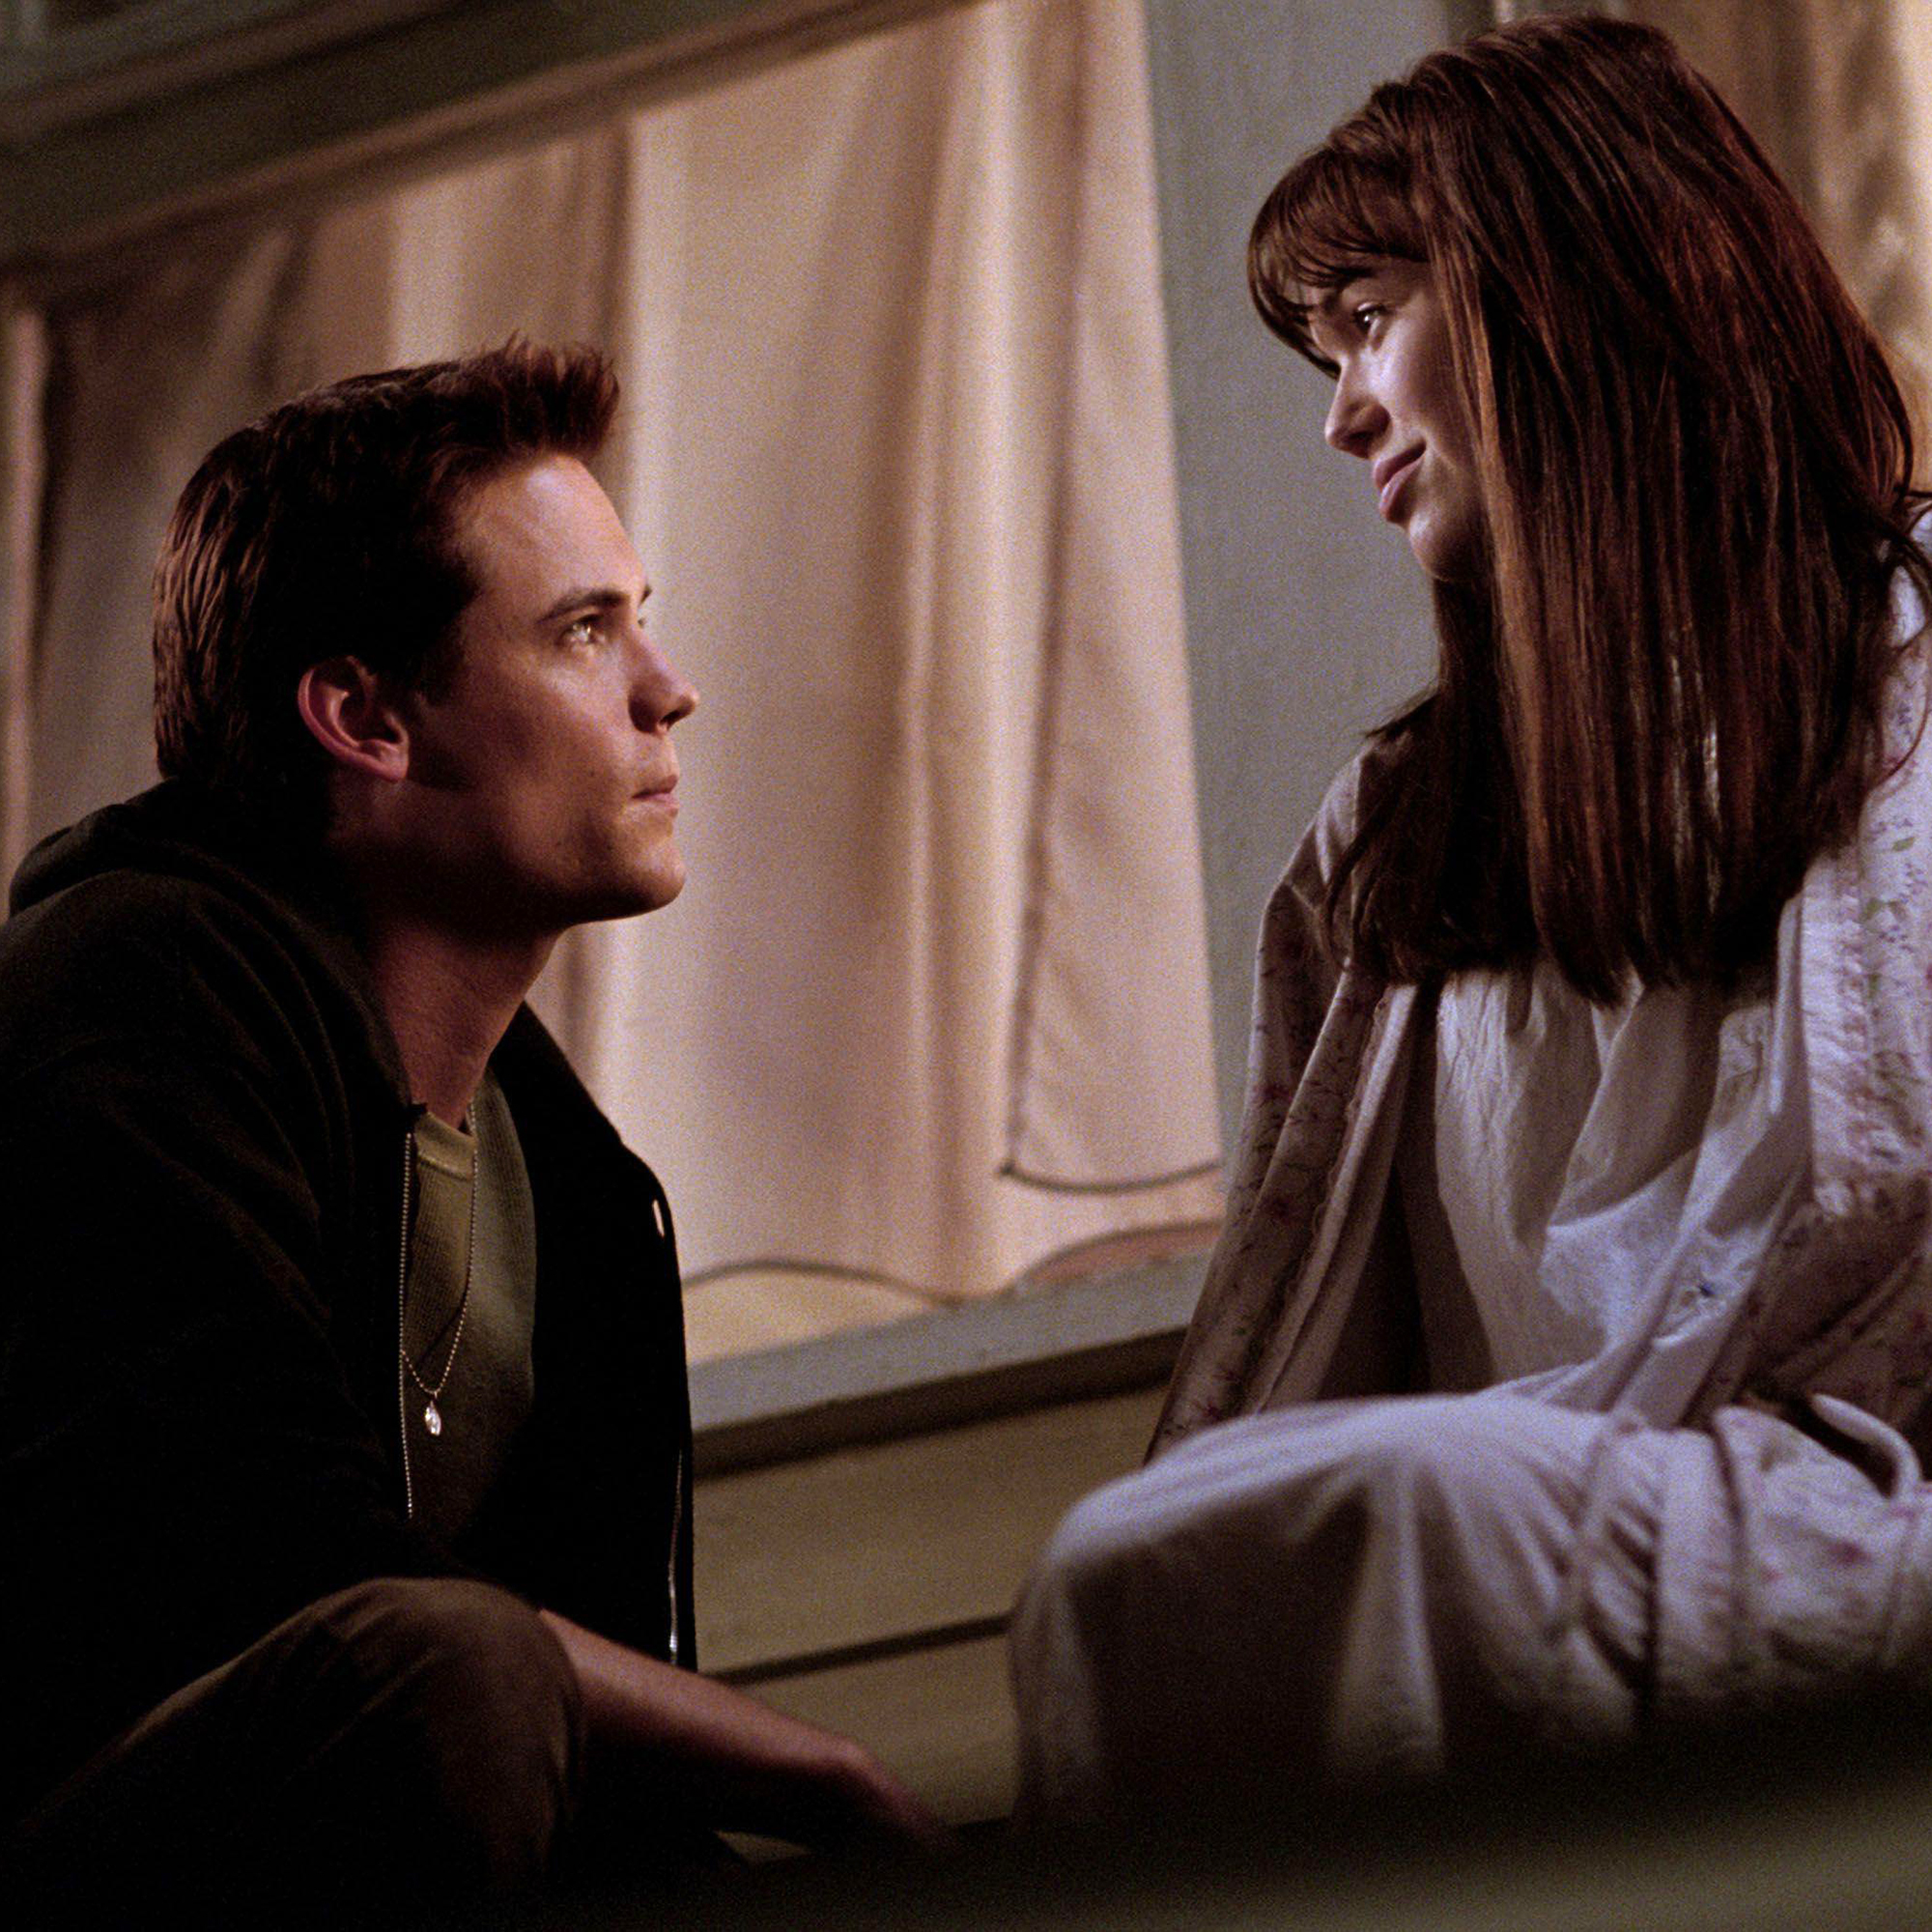 Mandy Moore S Former Co Star Shane West Calls Her The Strongest Woman I Know